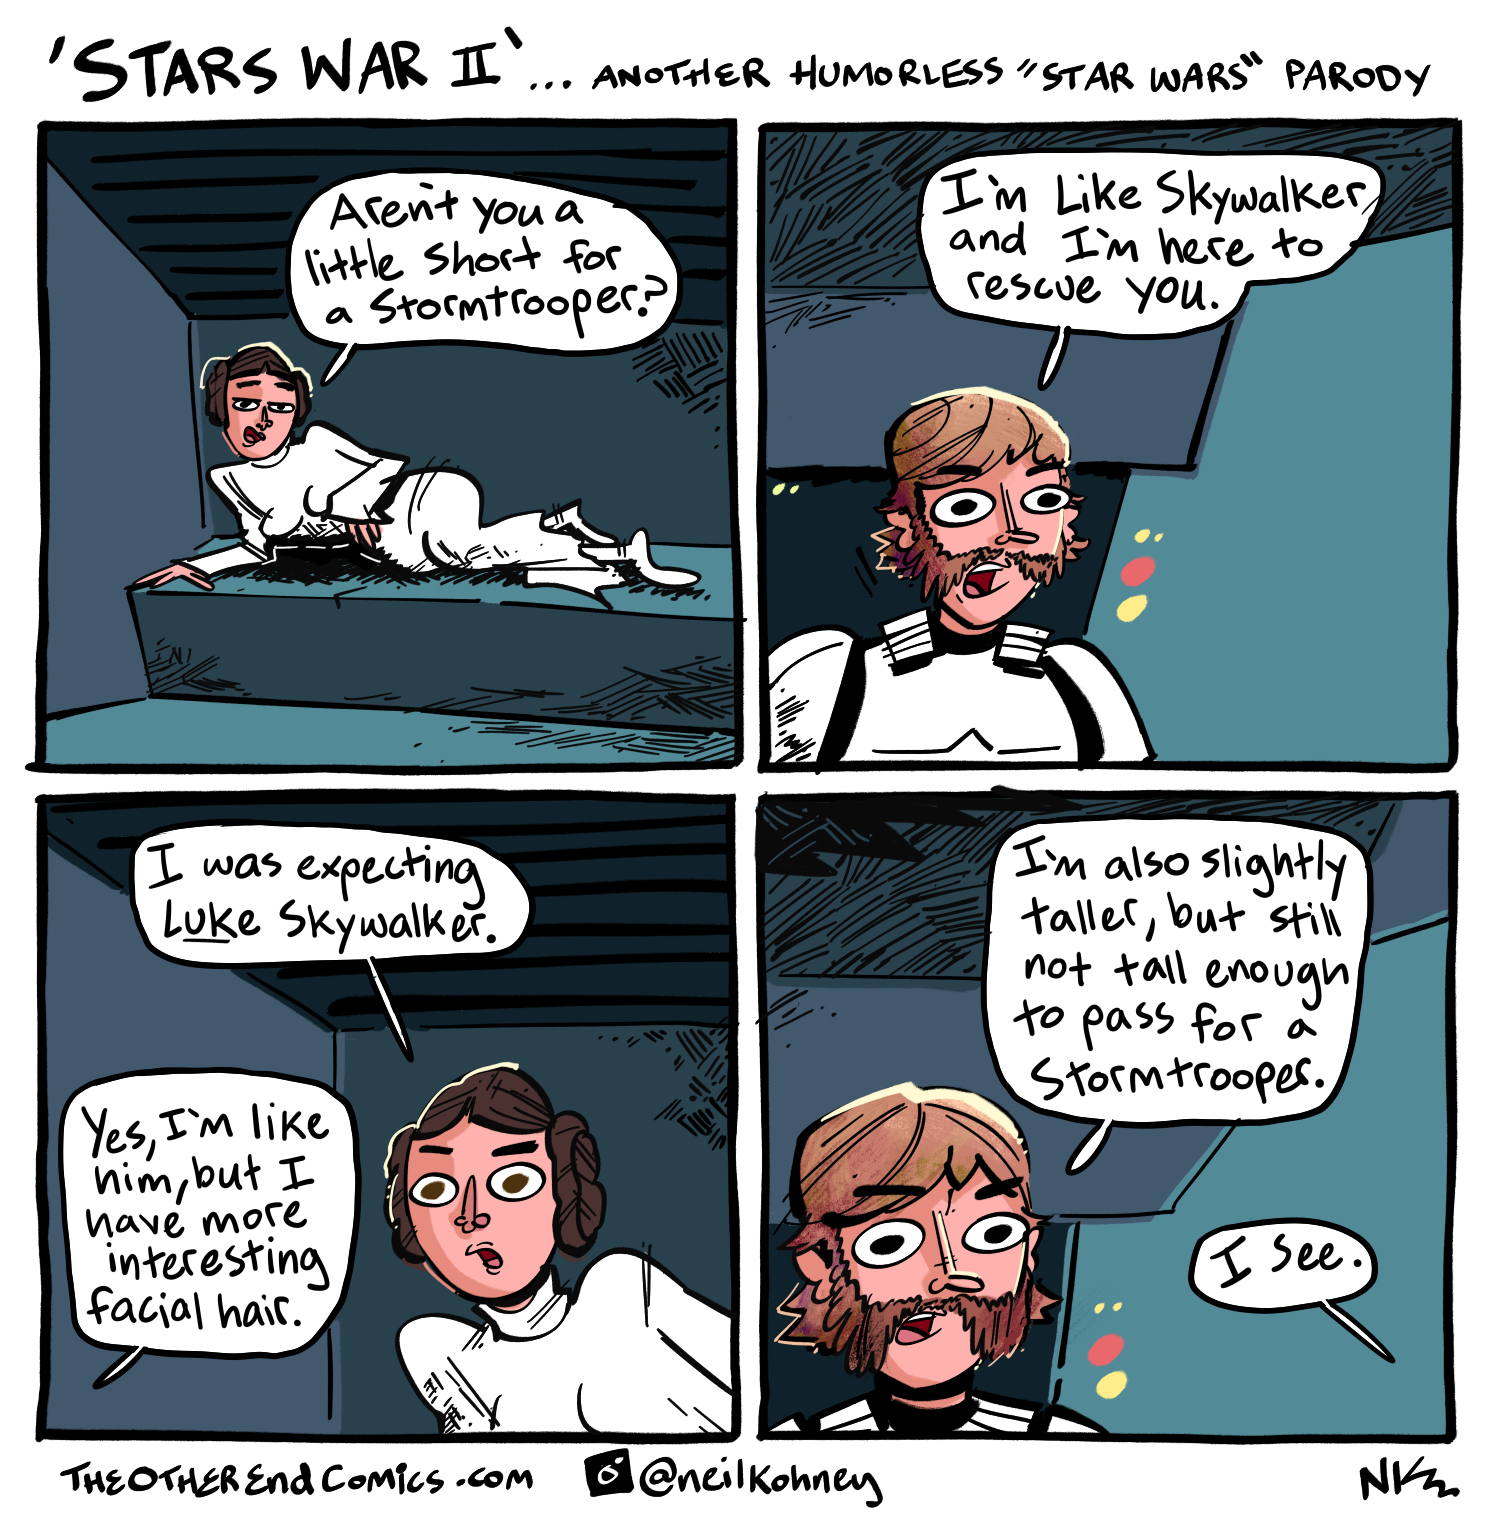 That's just Bigger Luke, of the famous Bigger Luke theory. This comic is so fake.